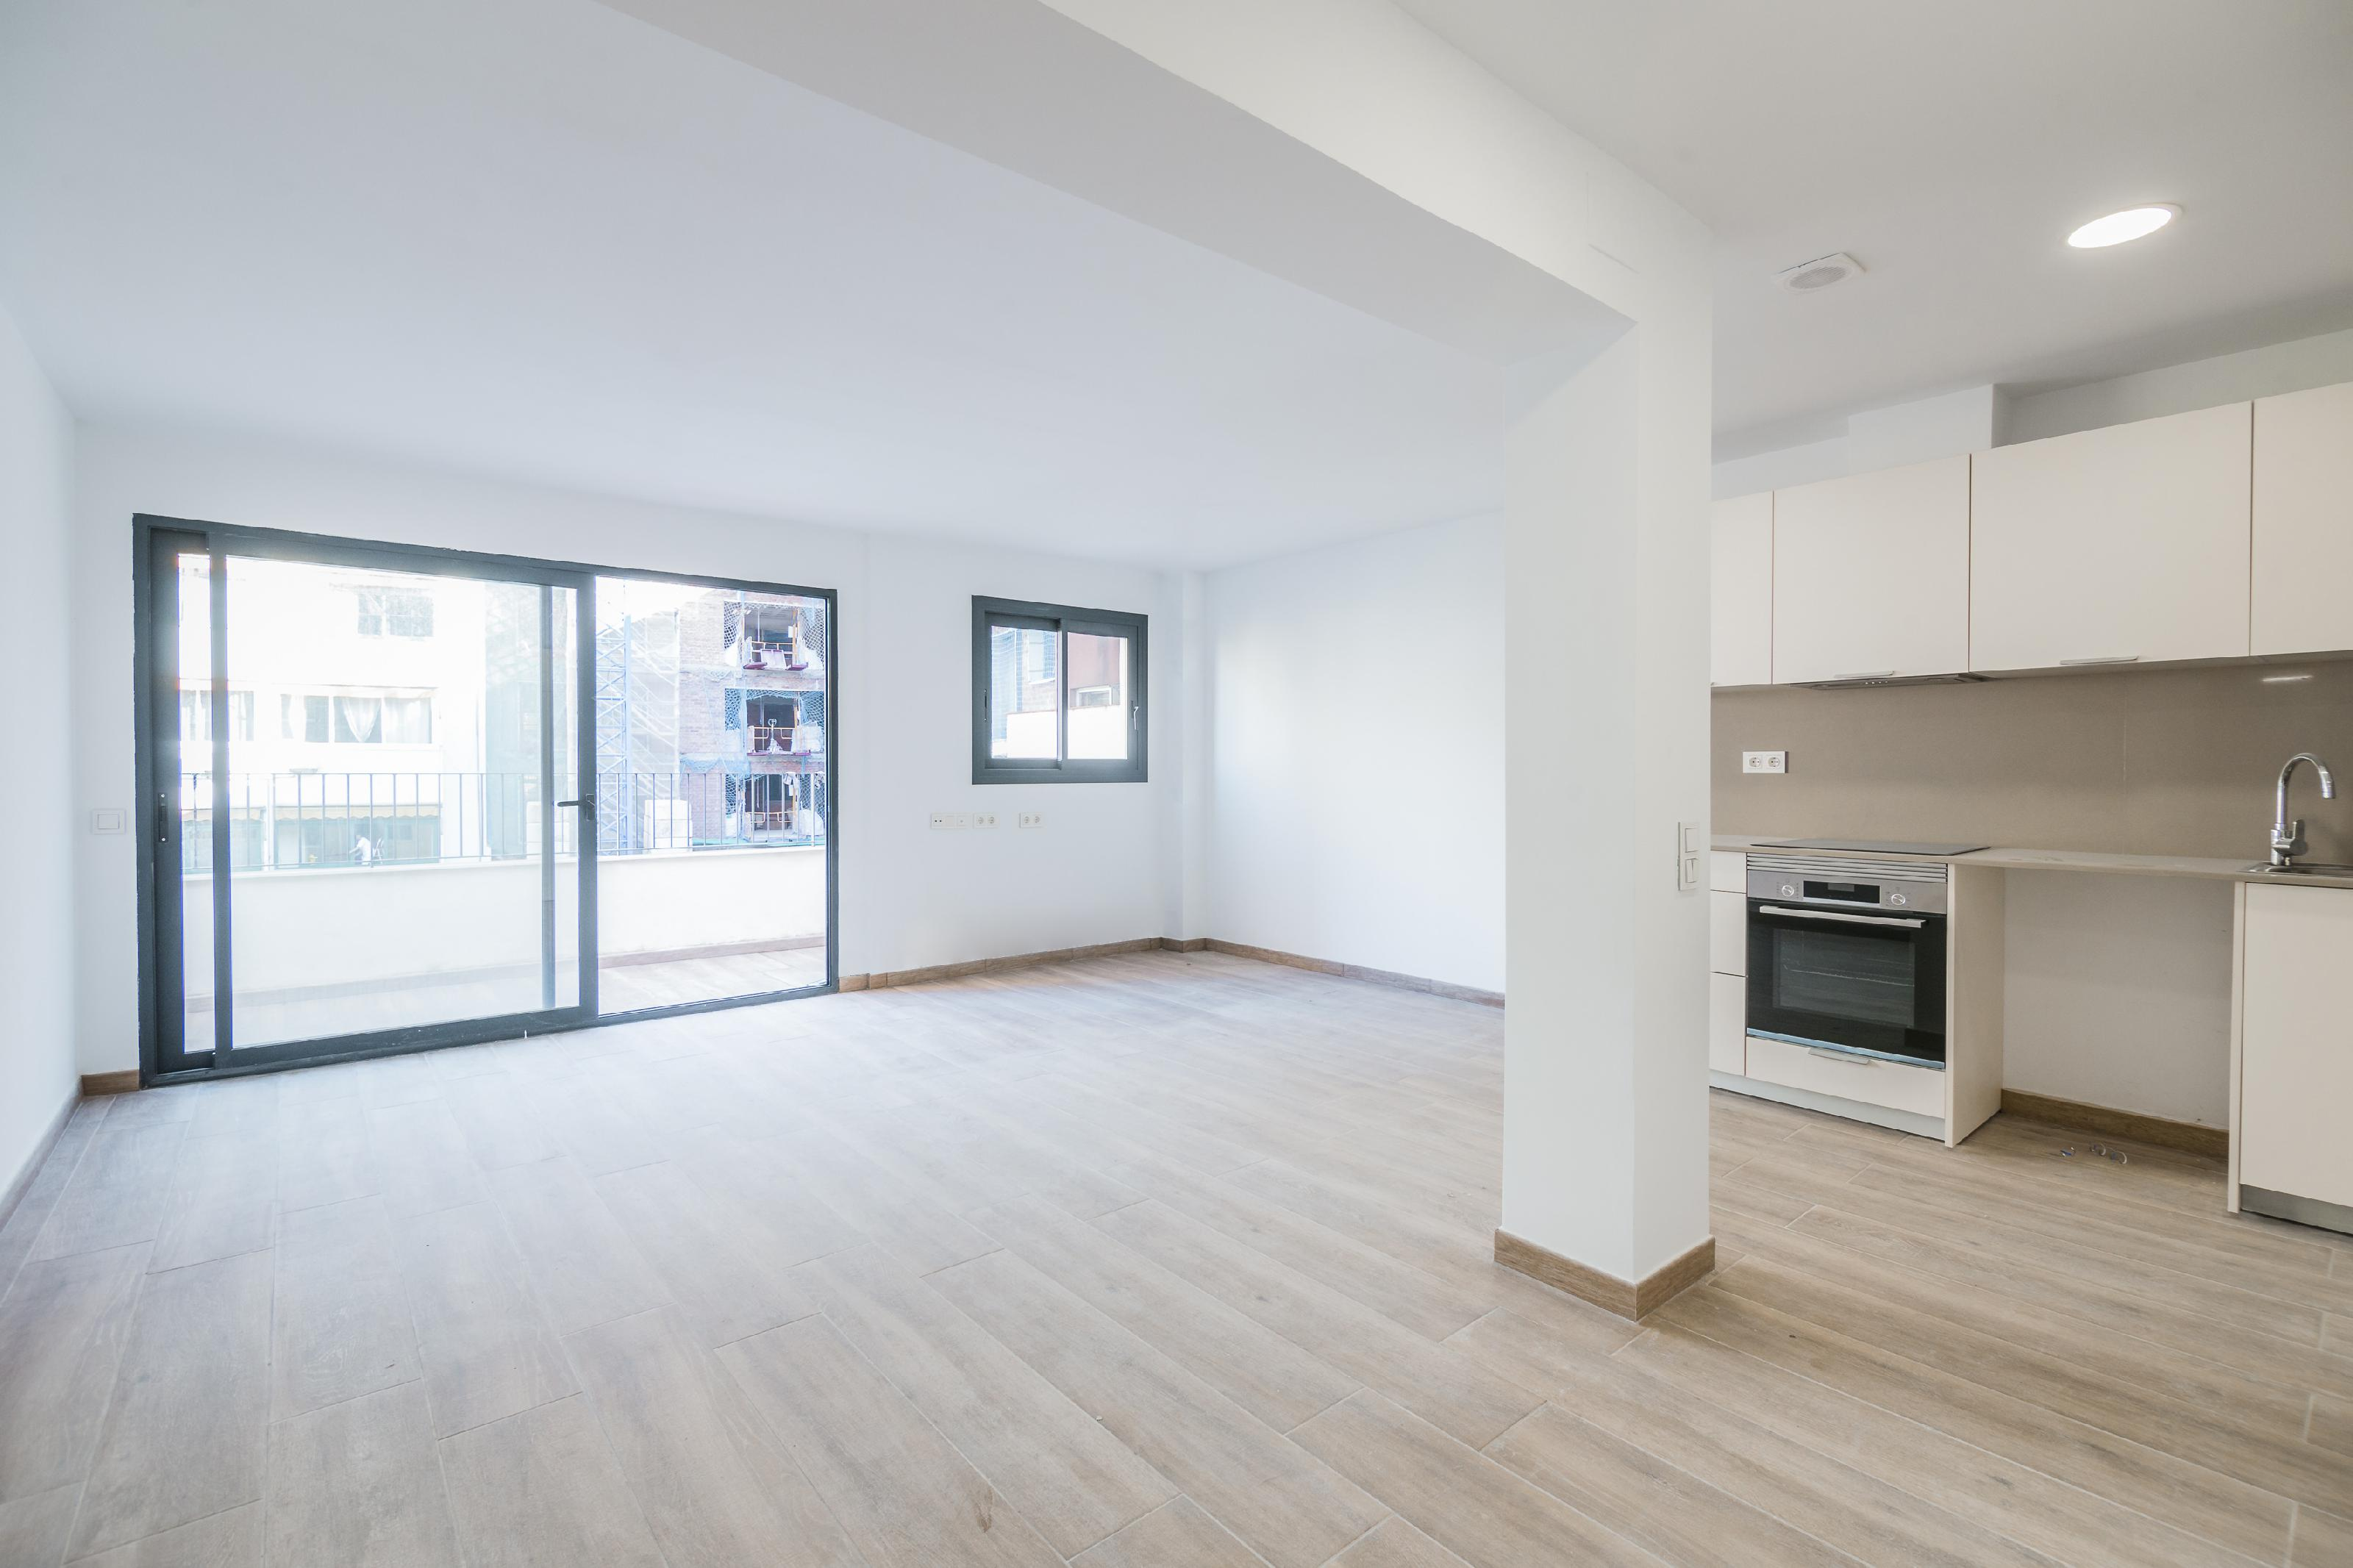 220653 Penthouse for sale in Sarrià-Sant Gervasi, Sant Gervasi-Galvany 2